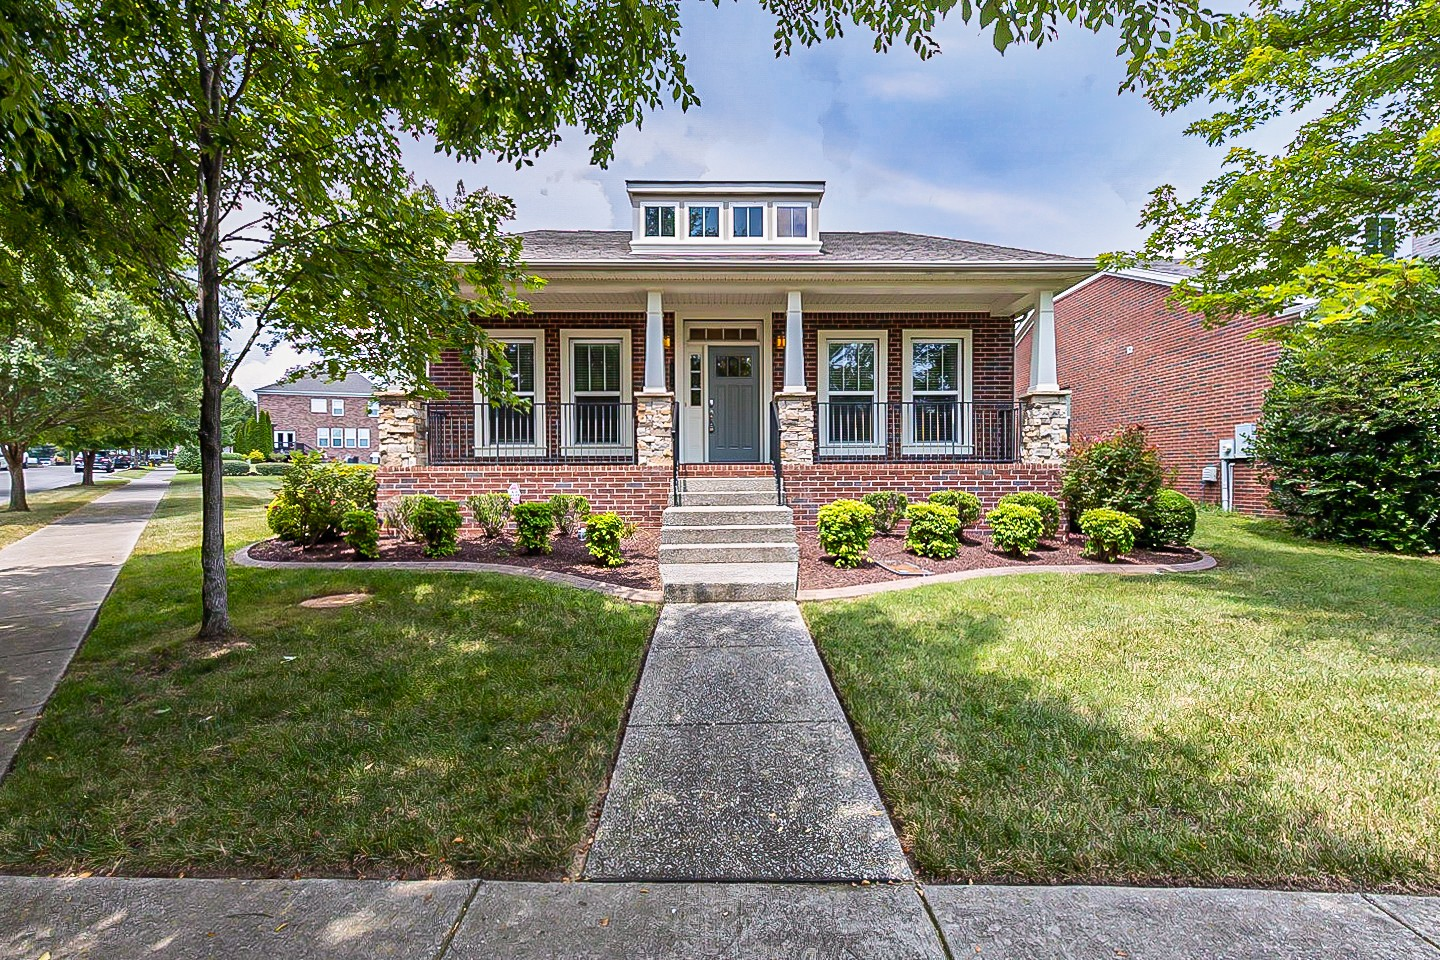 This Franklin one-story home offers granite countertops, and a three-car garage.